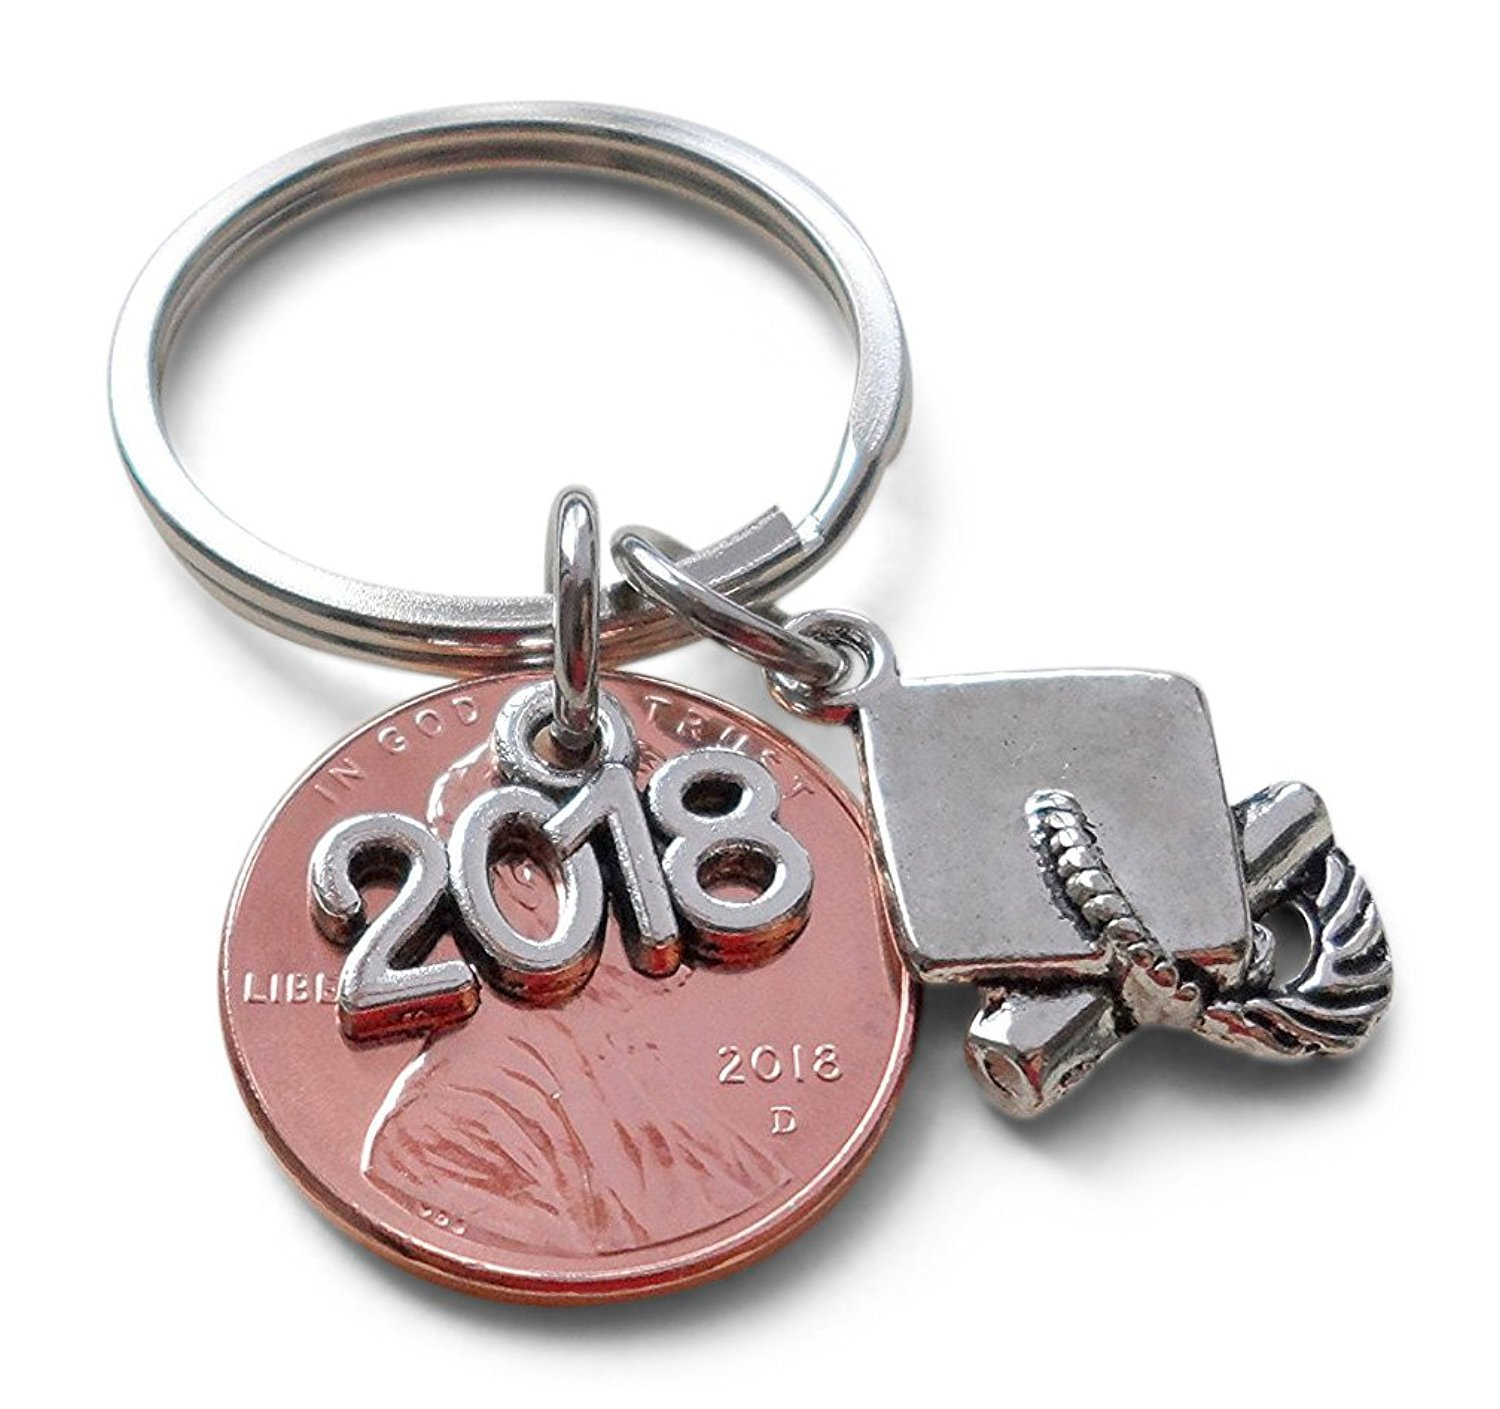 2018 Charm Layered Over 2018 Penny Keychain, Cap & Diploma Charm - Graduation Gift JewelryEveryday 32914000384